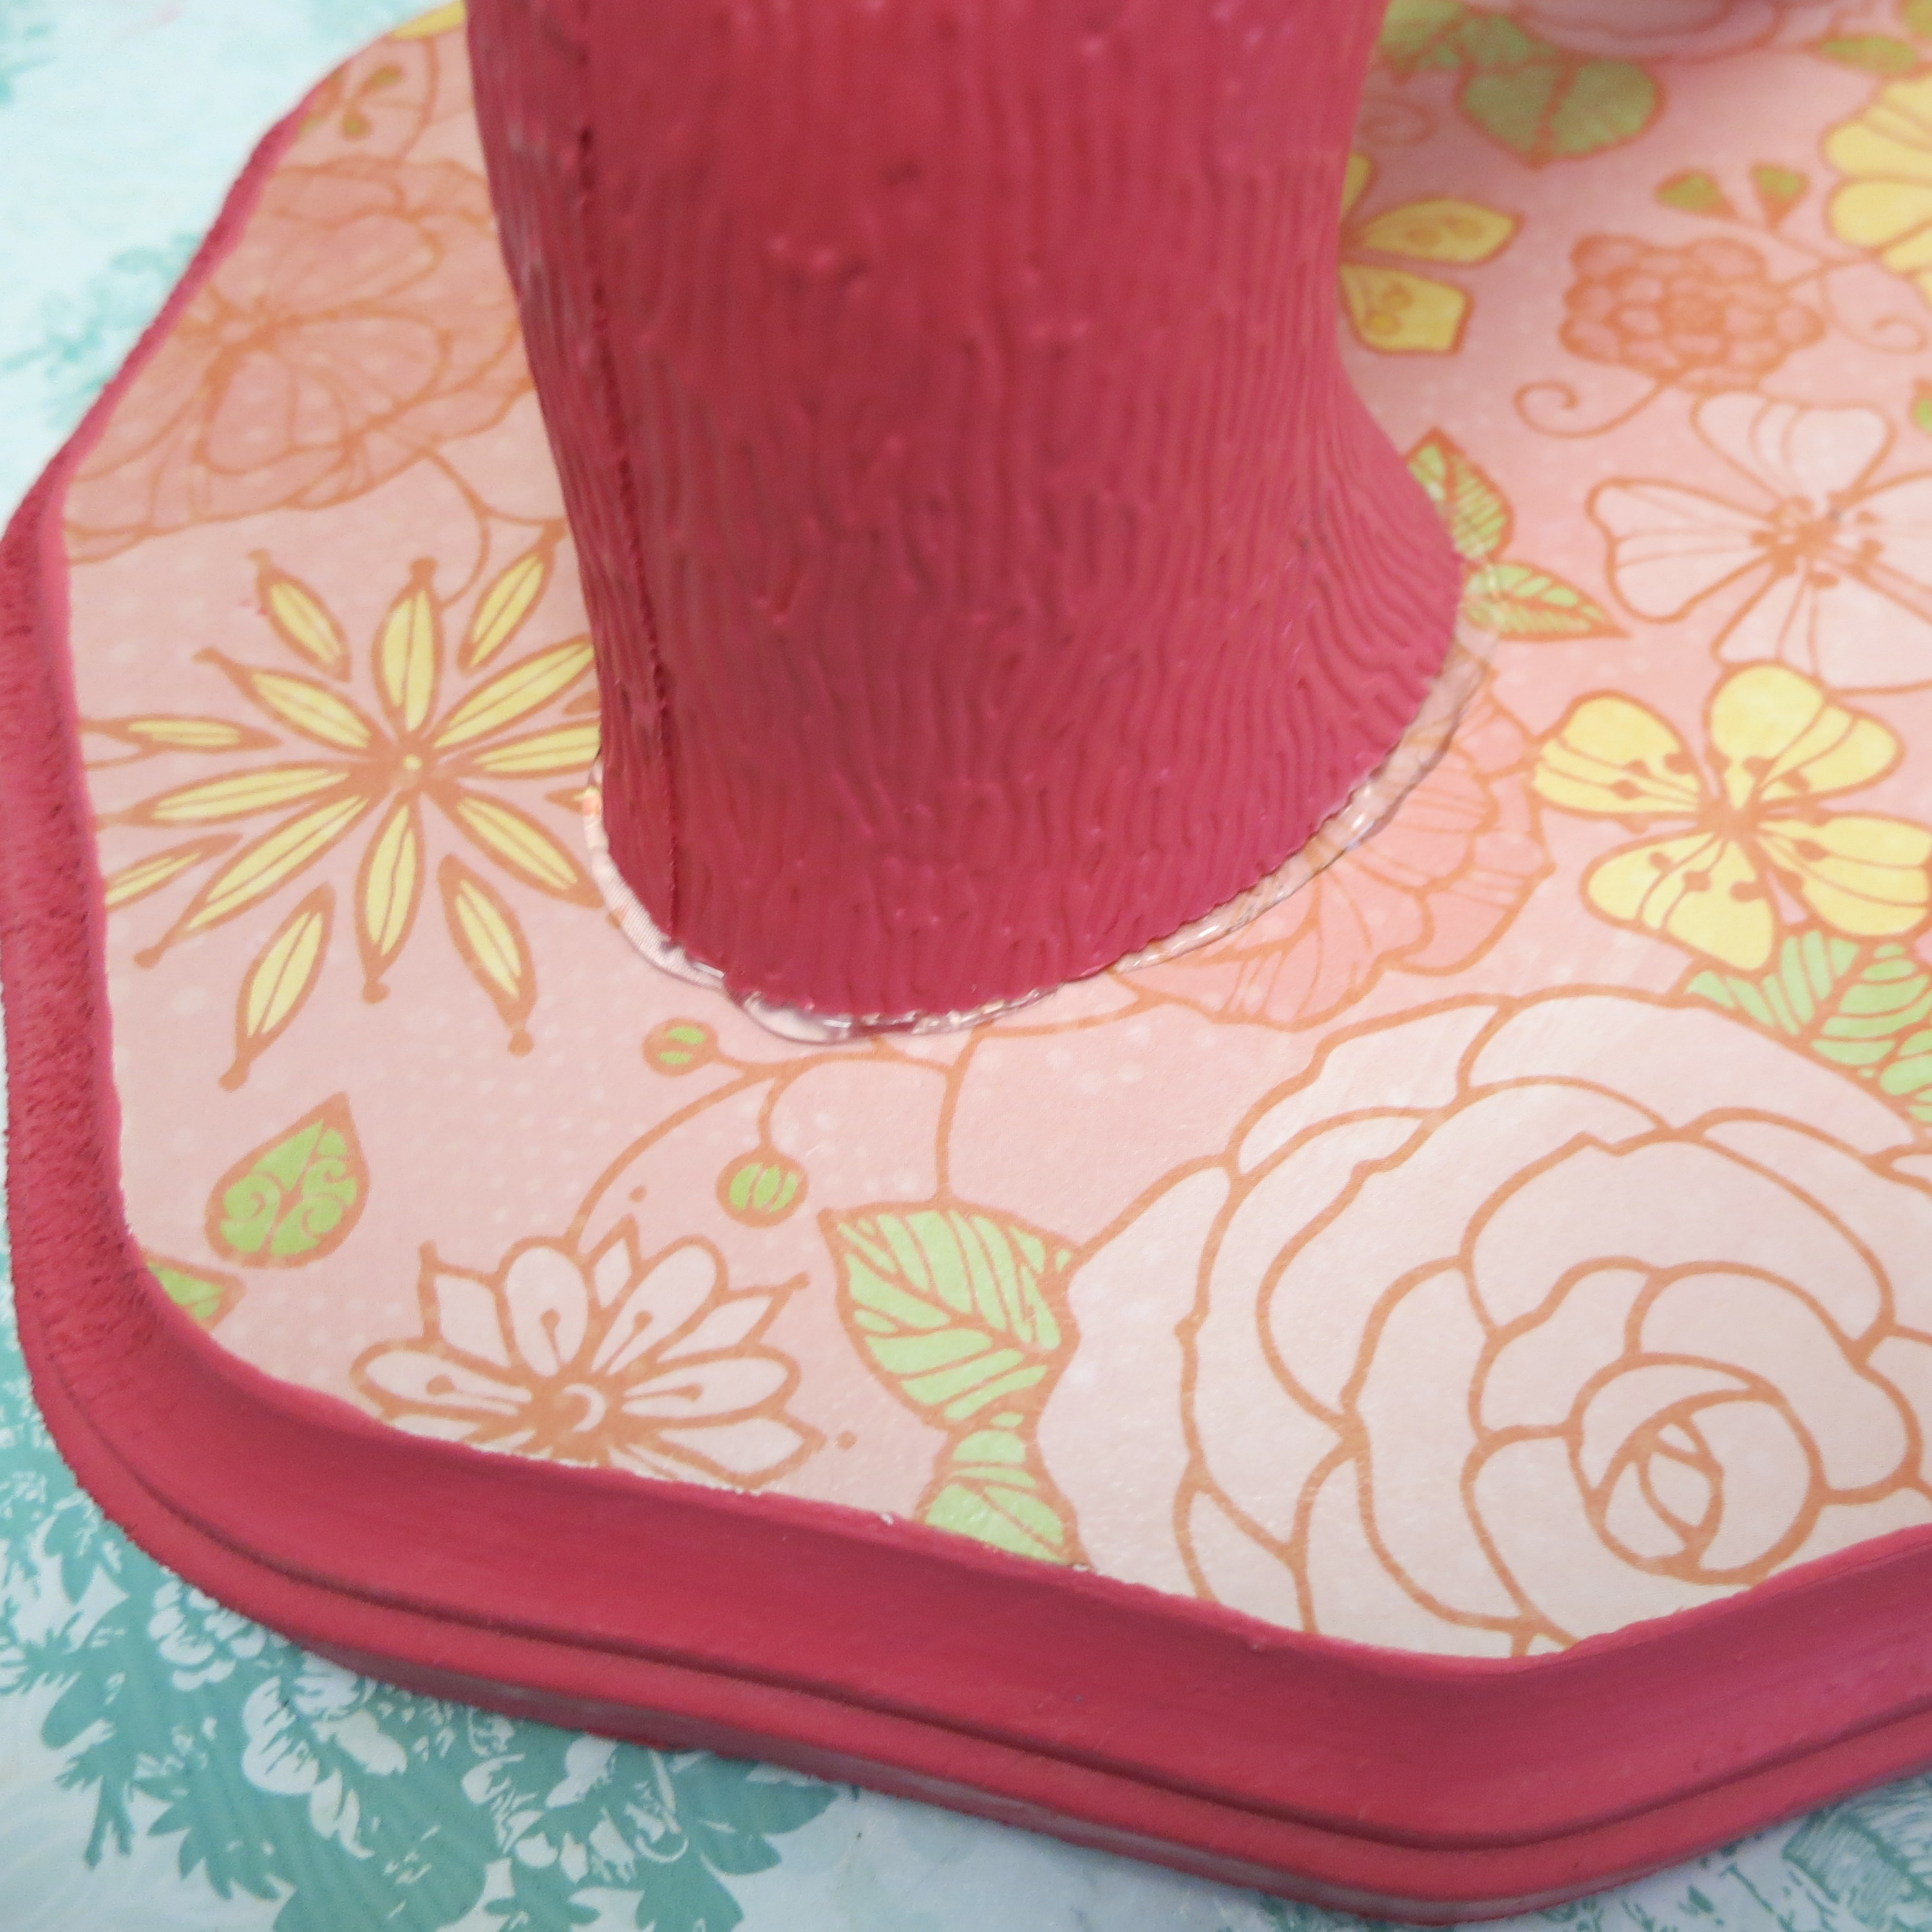 attach the neck onto the plaque with e6000 glue i use a bit of hot glue to hold the piece in place while the e6000 dries